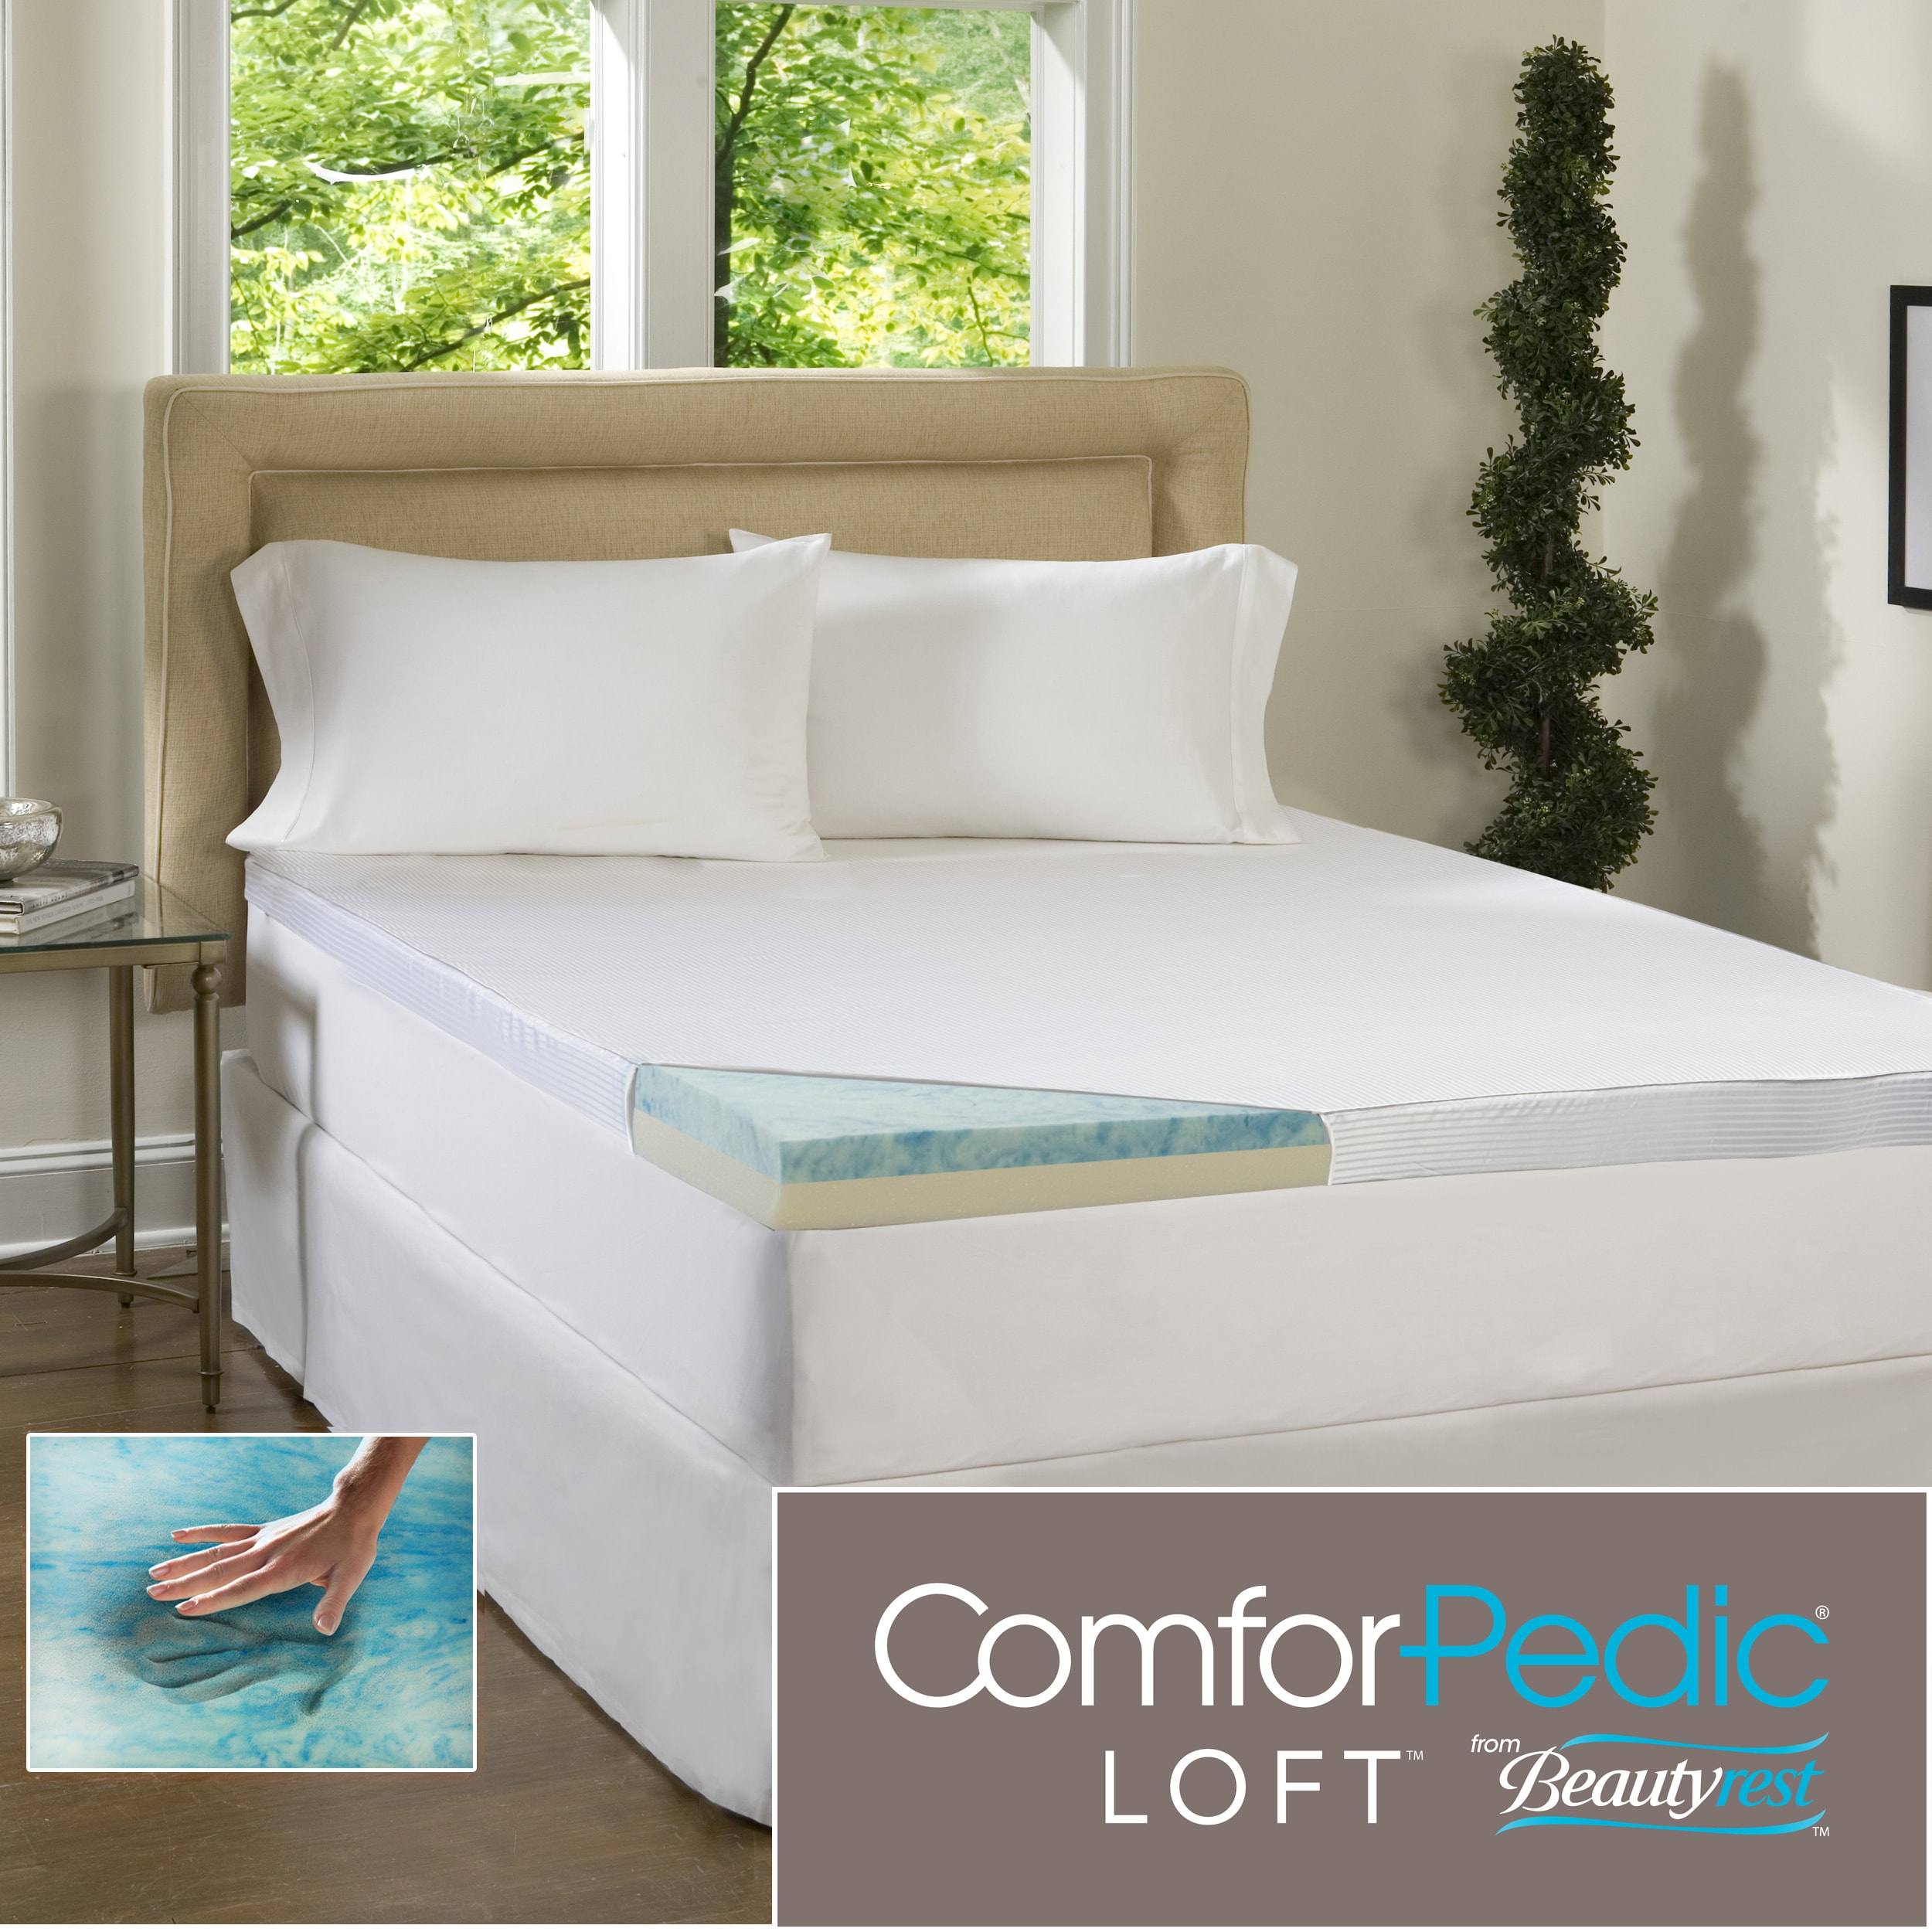 Beautyrest 2-inch Flat Select Gel Memory Foam Mattress Topper with Cover at Sears.com